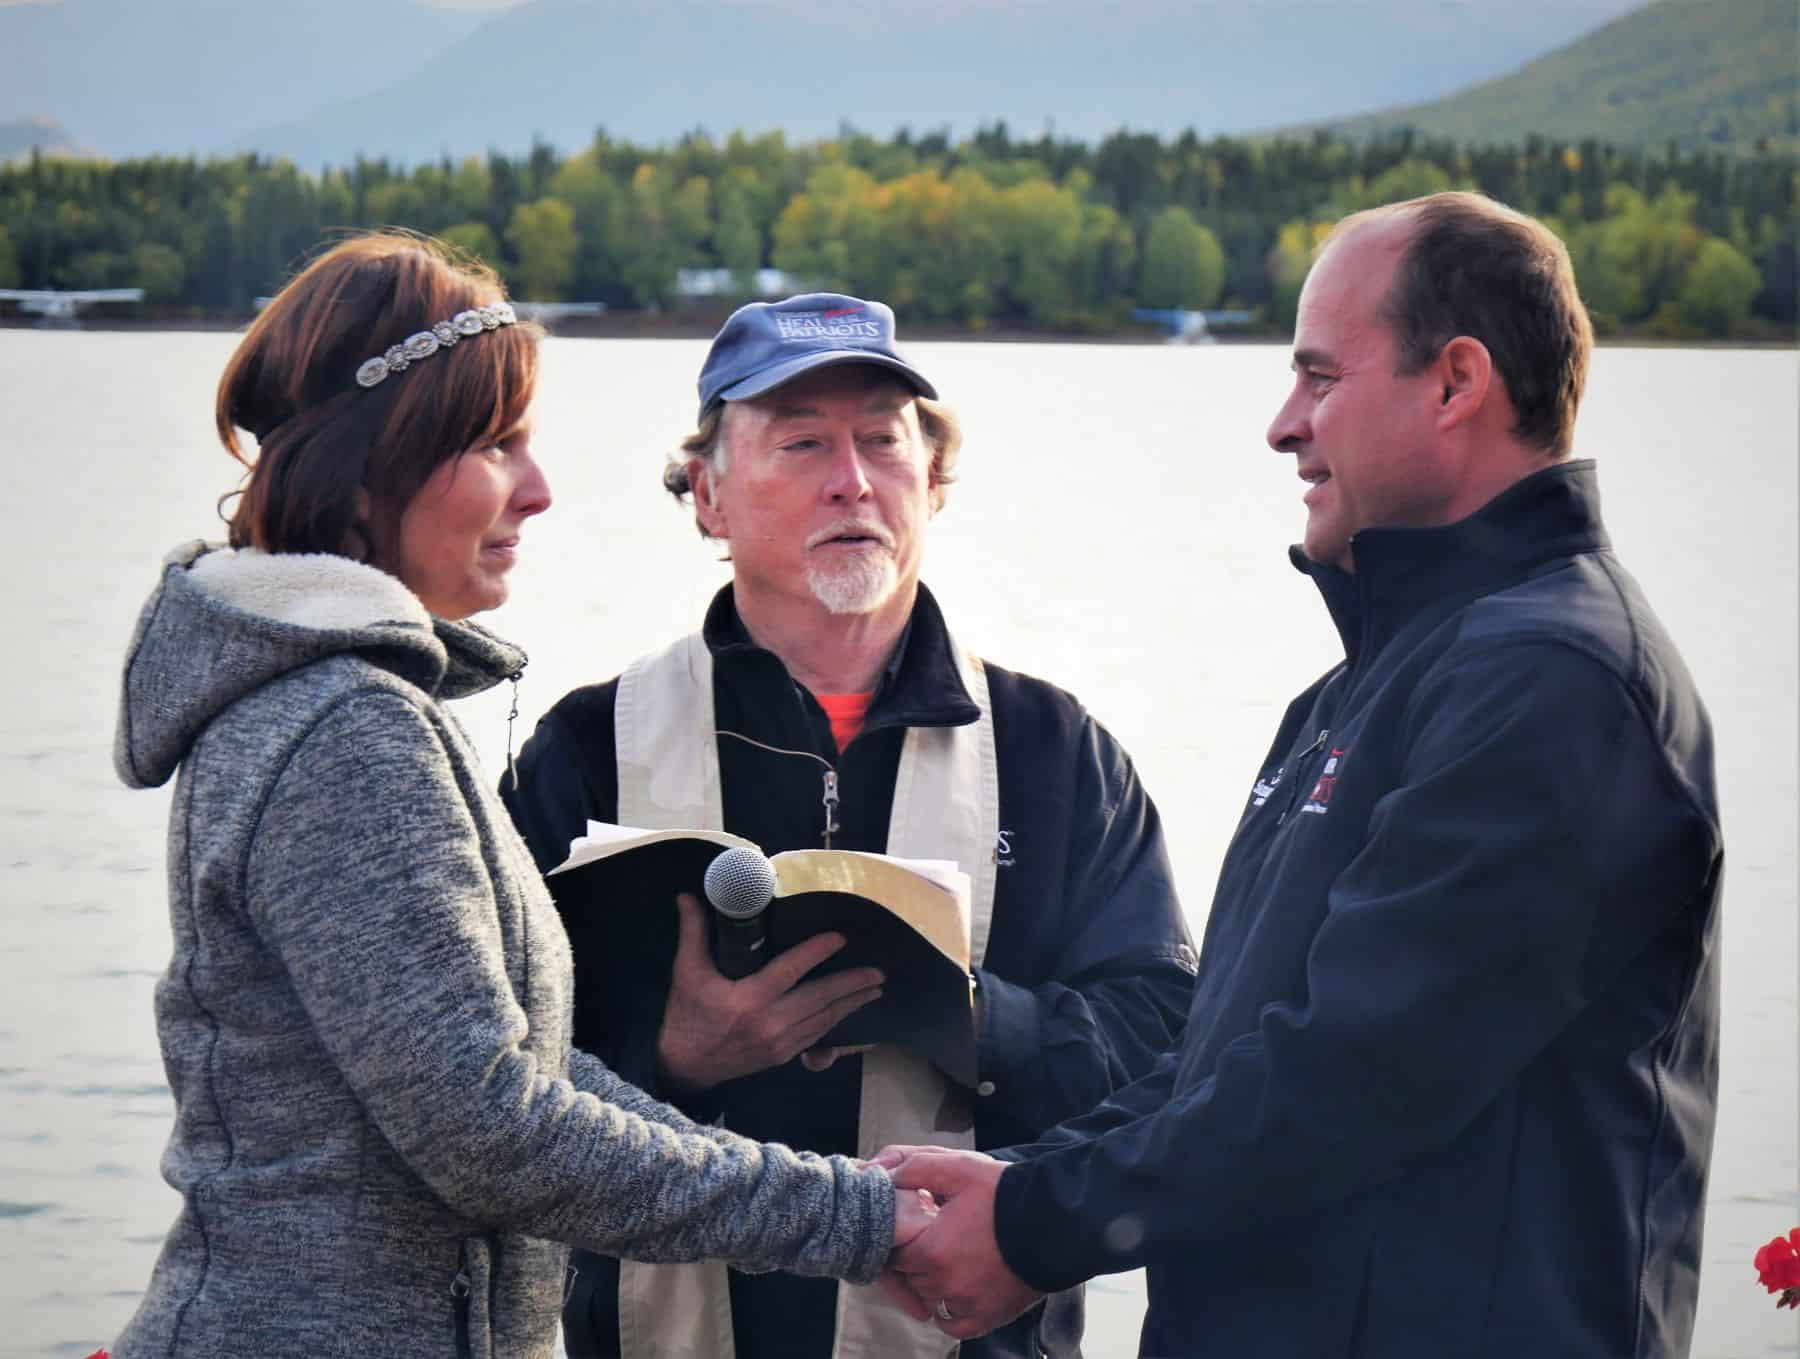 Pierre and Ethel renewed their wedding vows at the end of the week at Operation Heal Our Patriots. Later that morning they were both baptized after giving their lives to Christ earlier in the week.